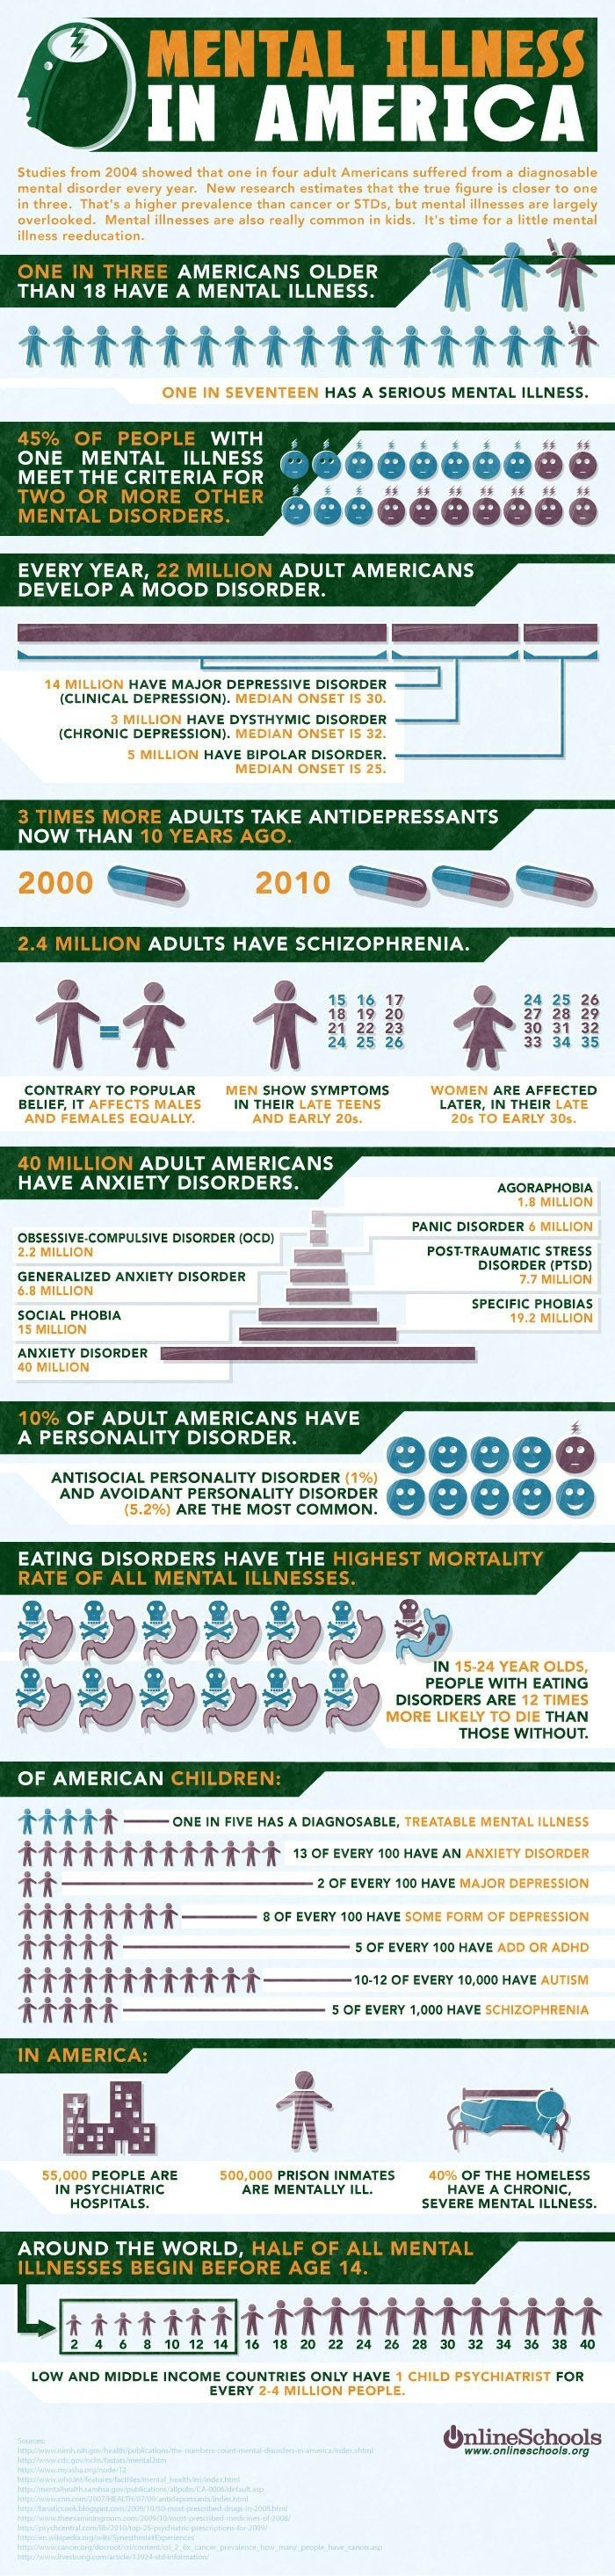 Mental health disorders in America